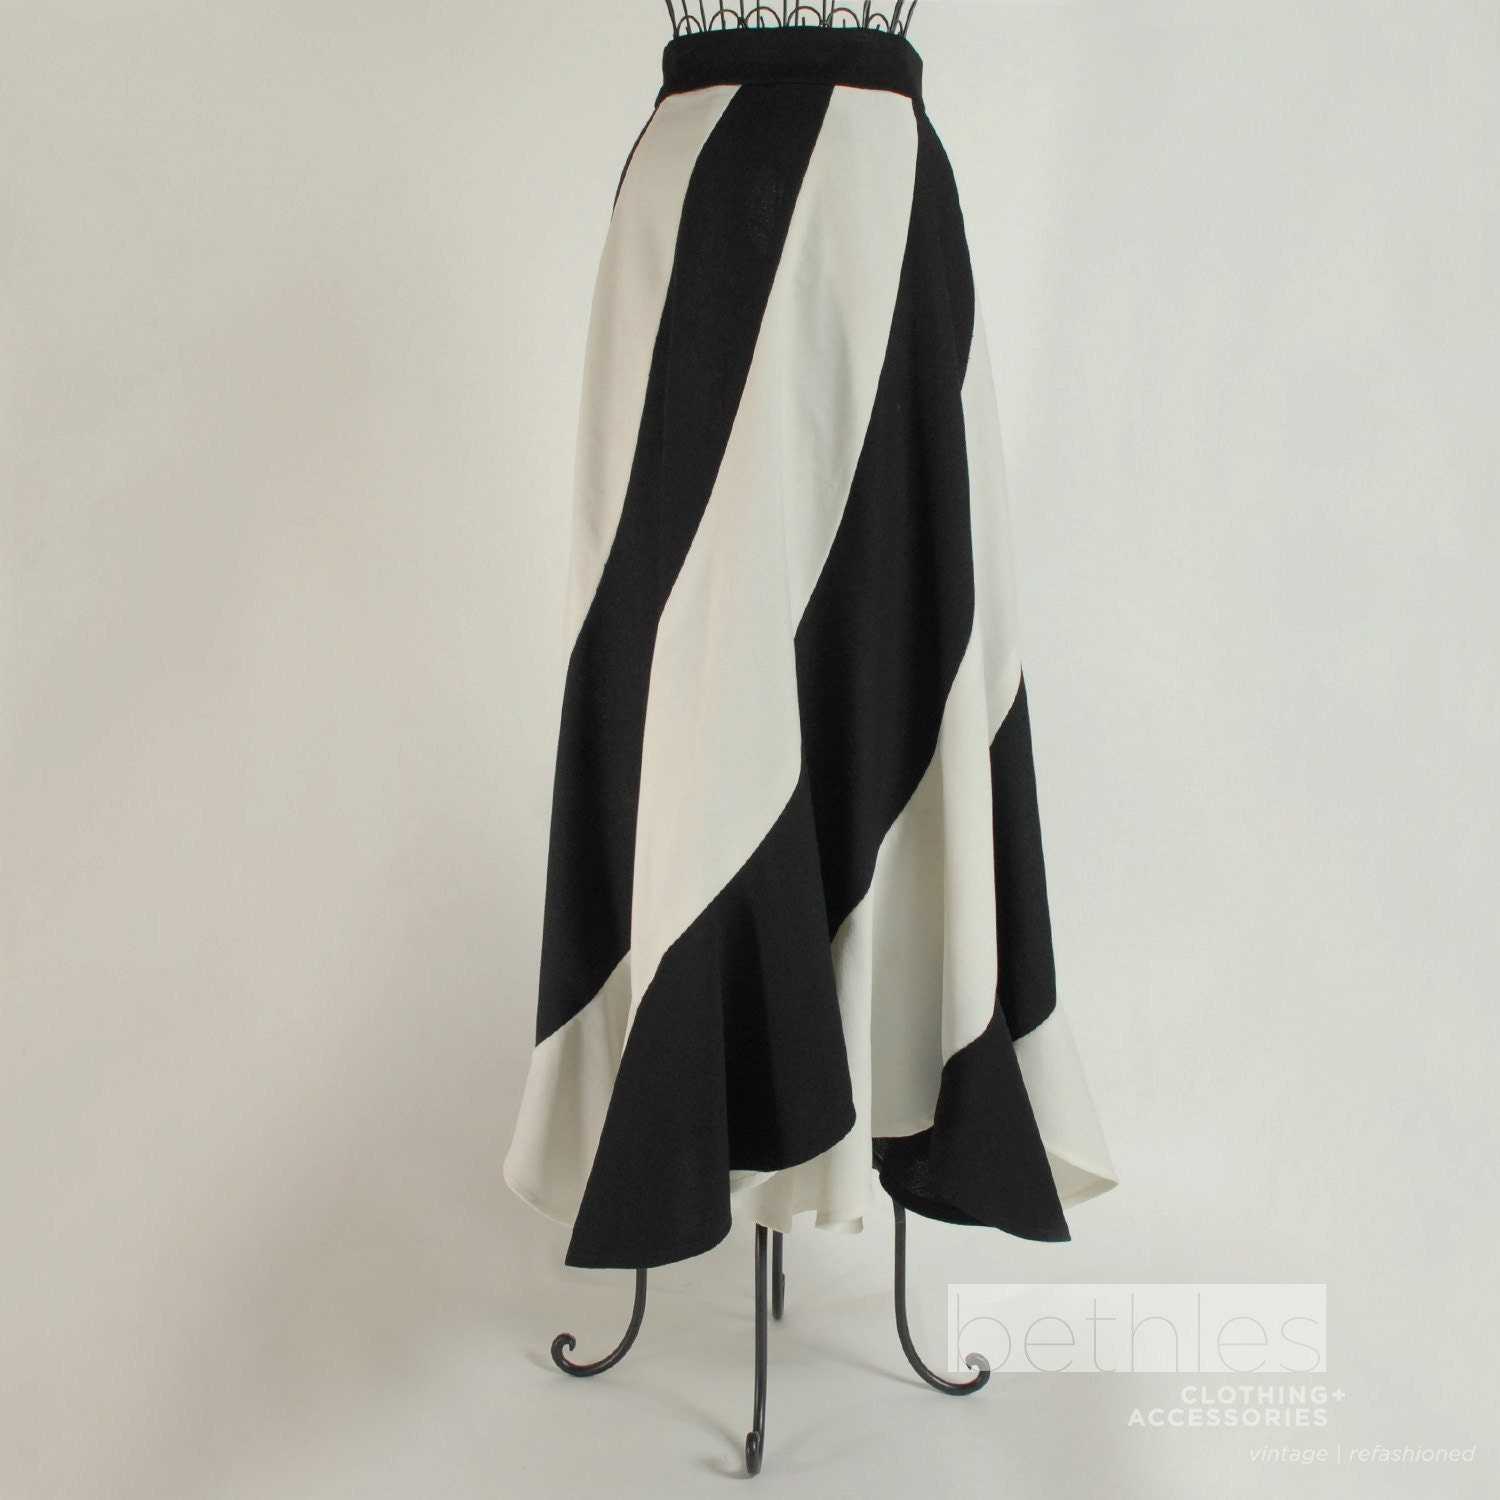 black and white maxi striped skirt vintage 70s by